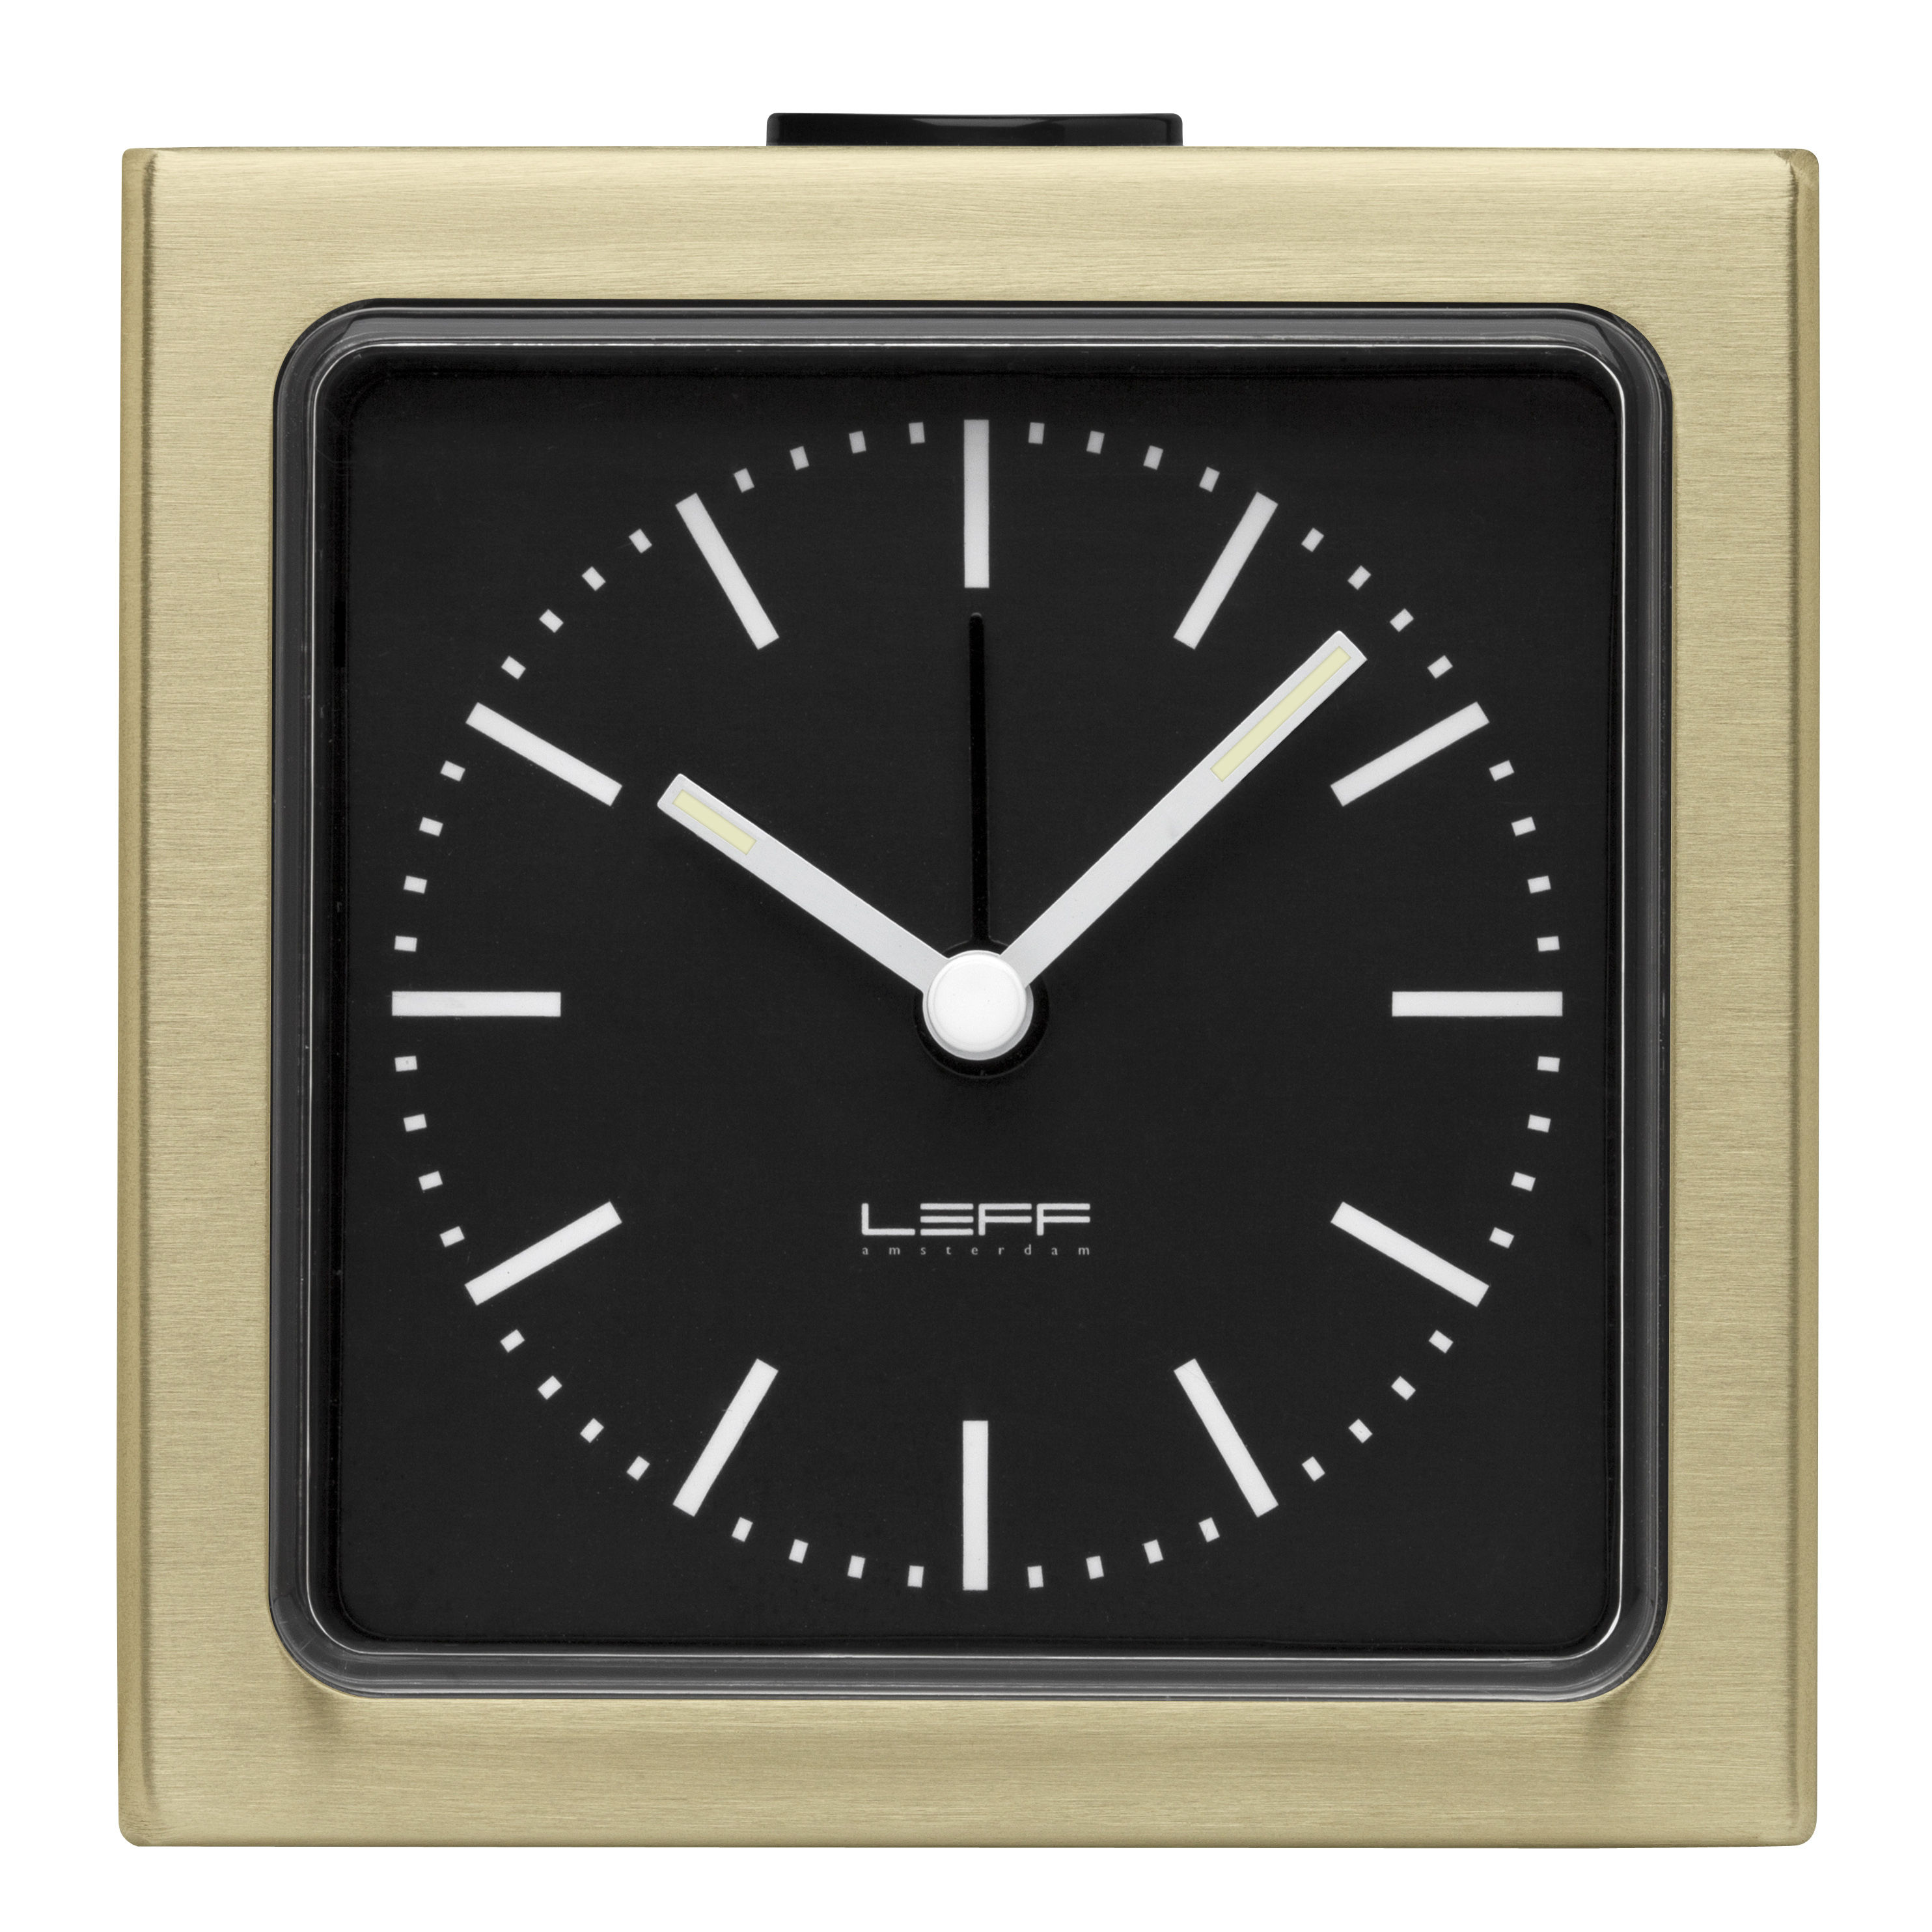 Accessories - Alarm Clocks & Travel Radios - Block Alarm clock - H 8,5 cm by LEFF amsterdam - Brass, black - ABS, PMMA, Stainless steel